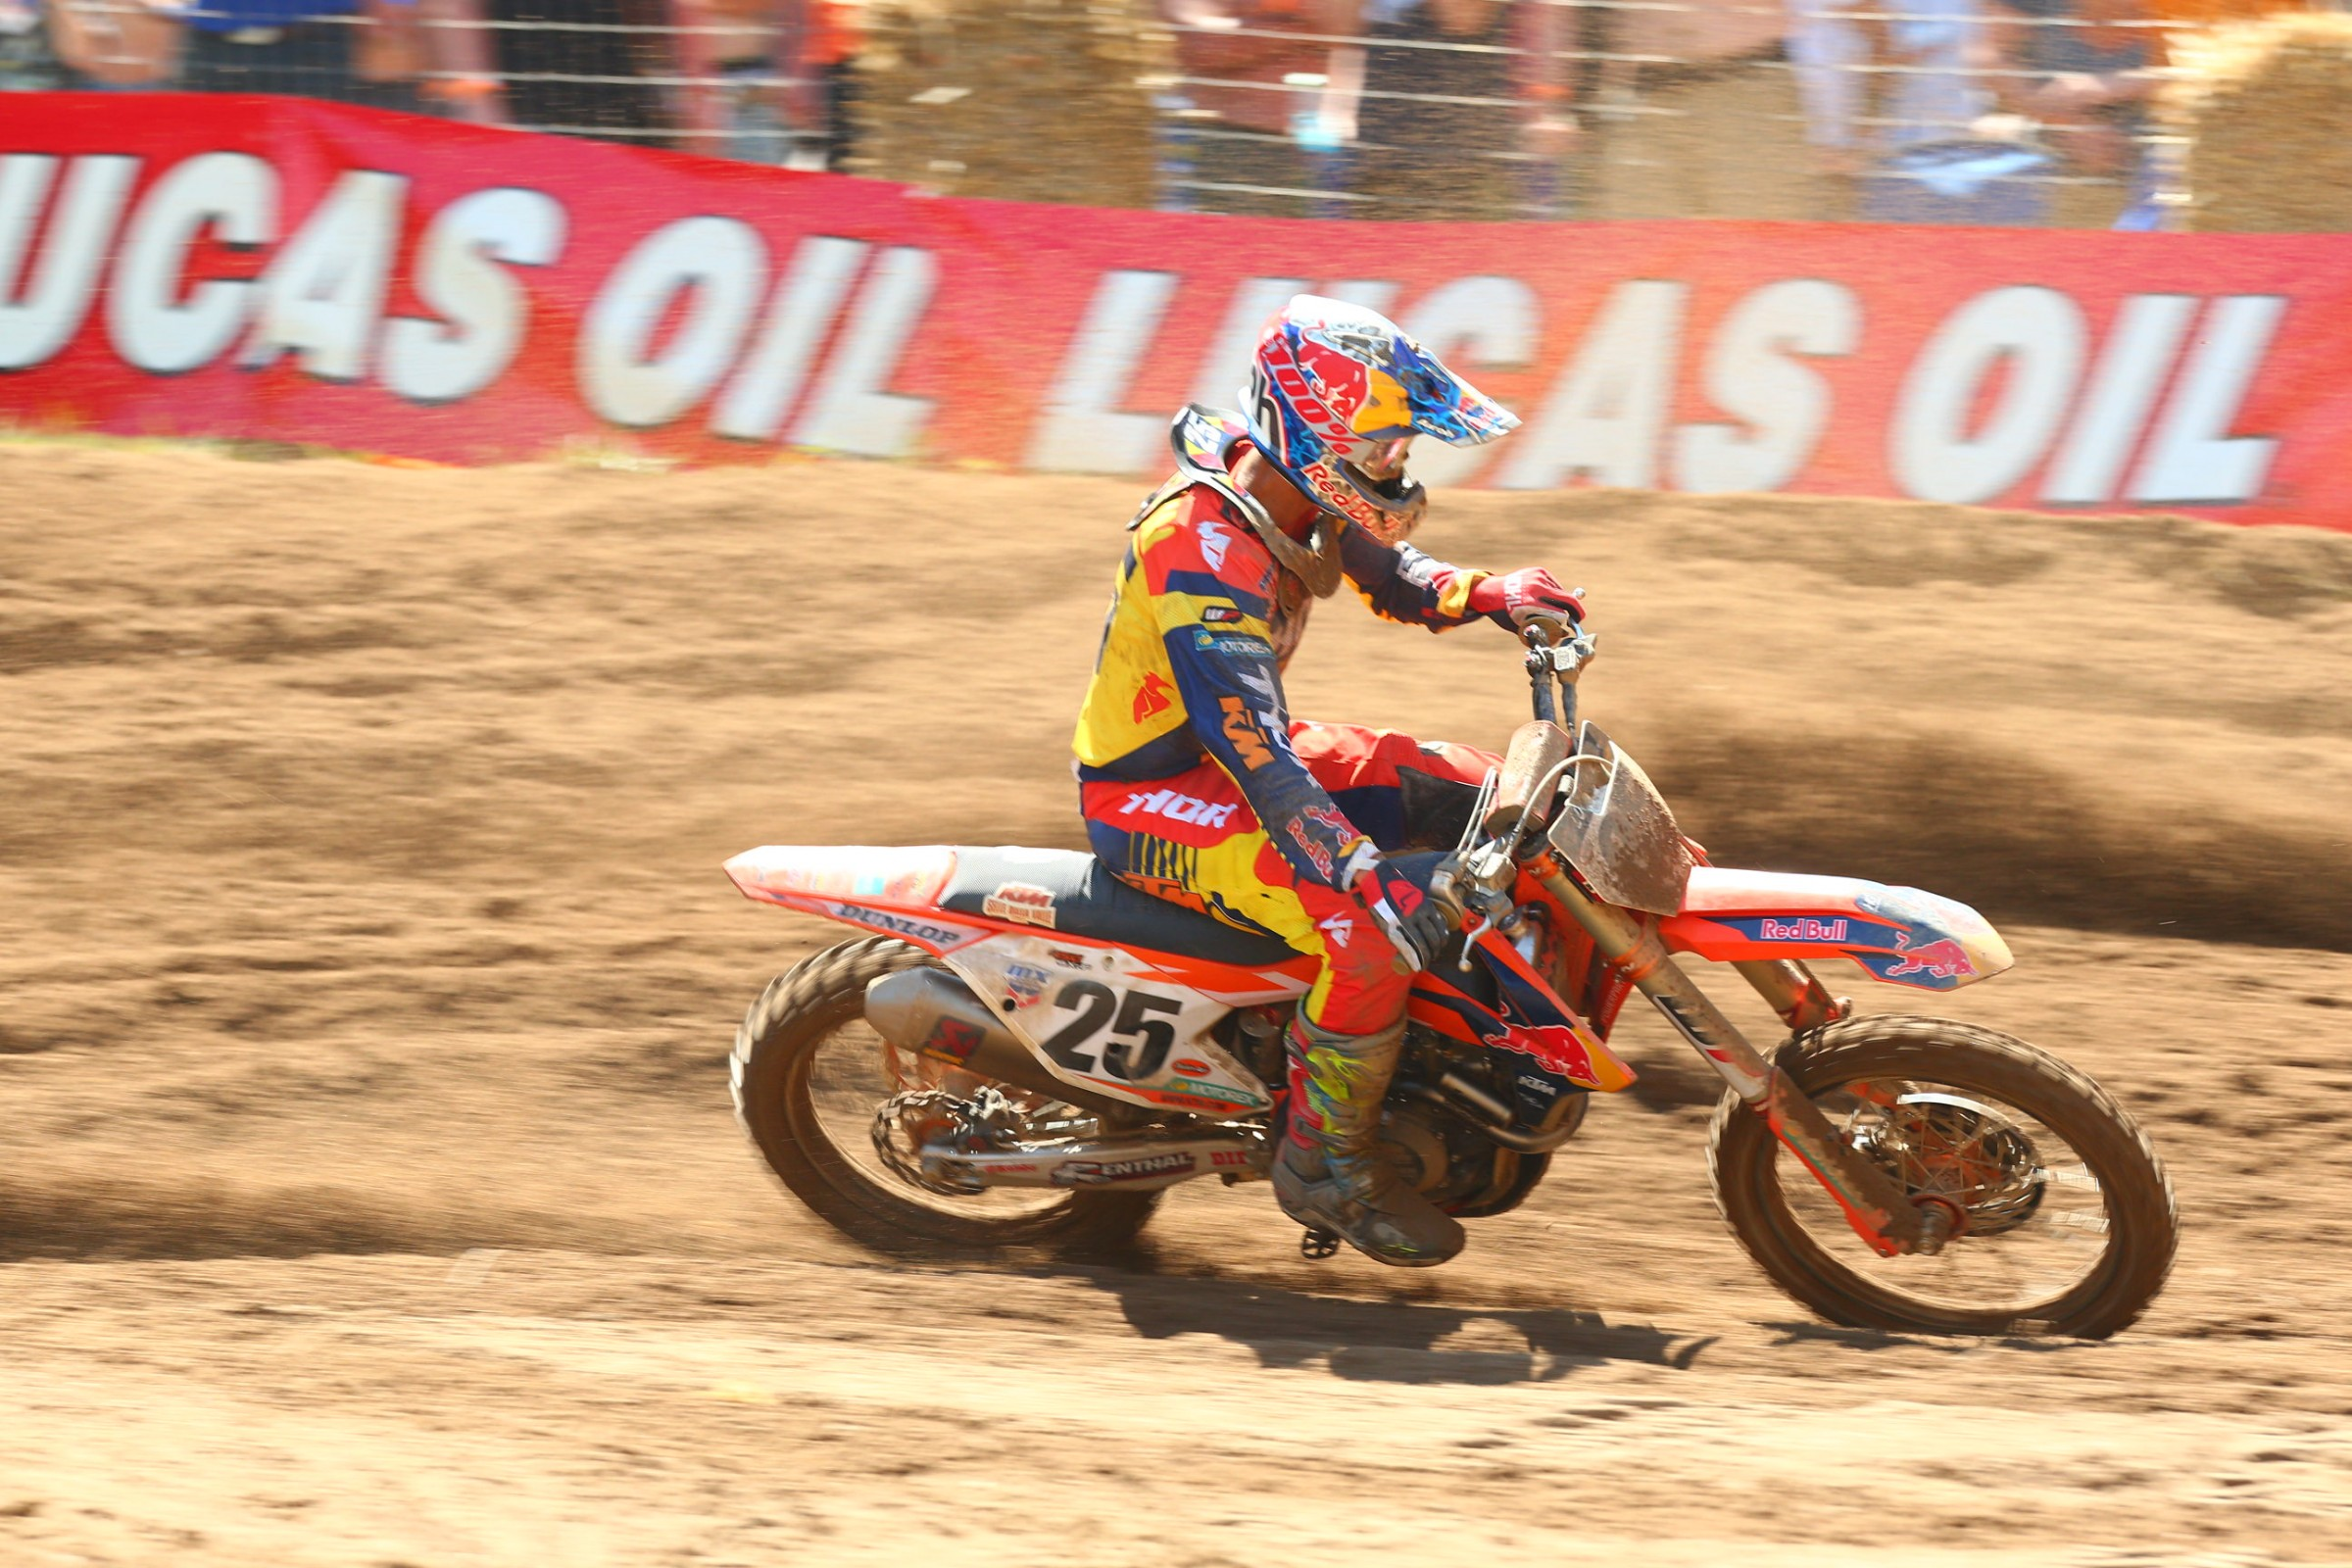 Musquin was the second-fastest 450 rider, but crashes in both motos held him to 4-DNF finishes.